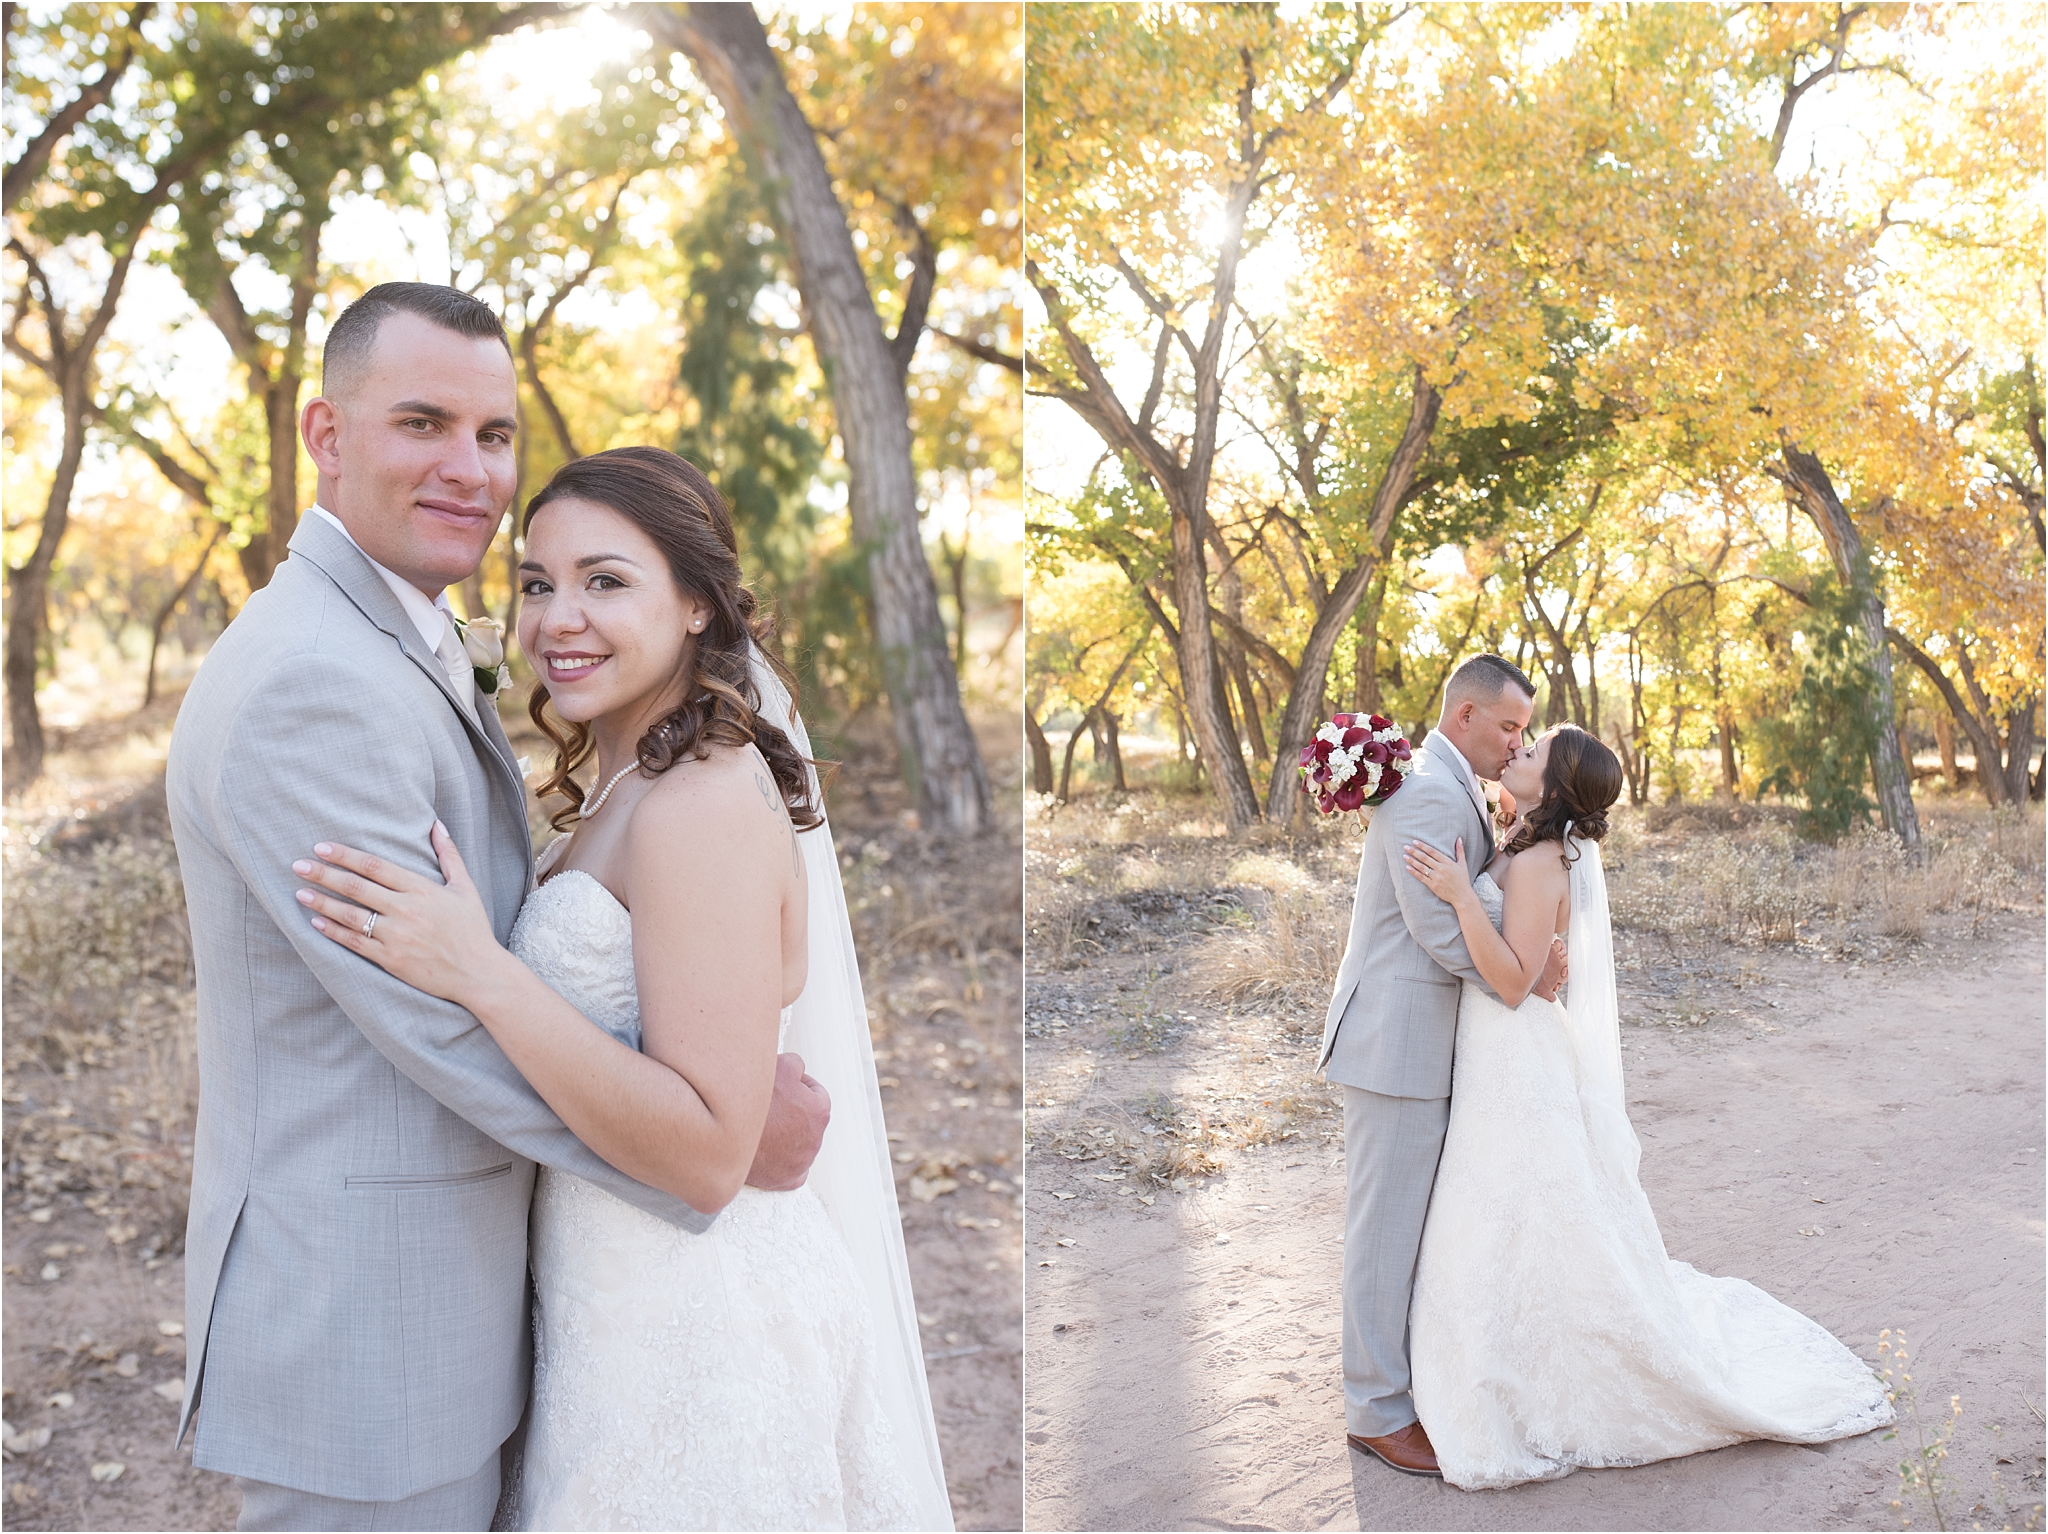 kayla kitts photography - albuquerque wedding photographer - hairpins and scissors - a cake odyssey - new mexico wedding photographer_0050.jpg